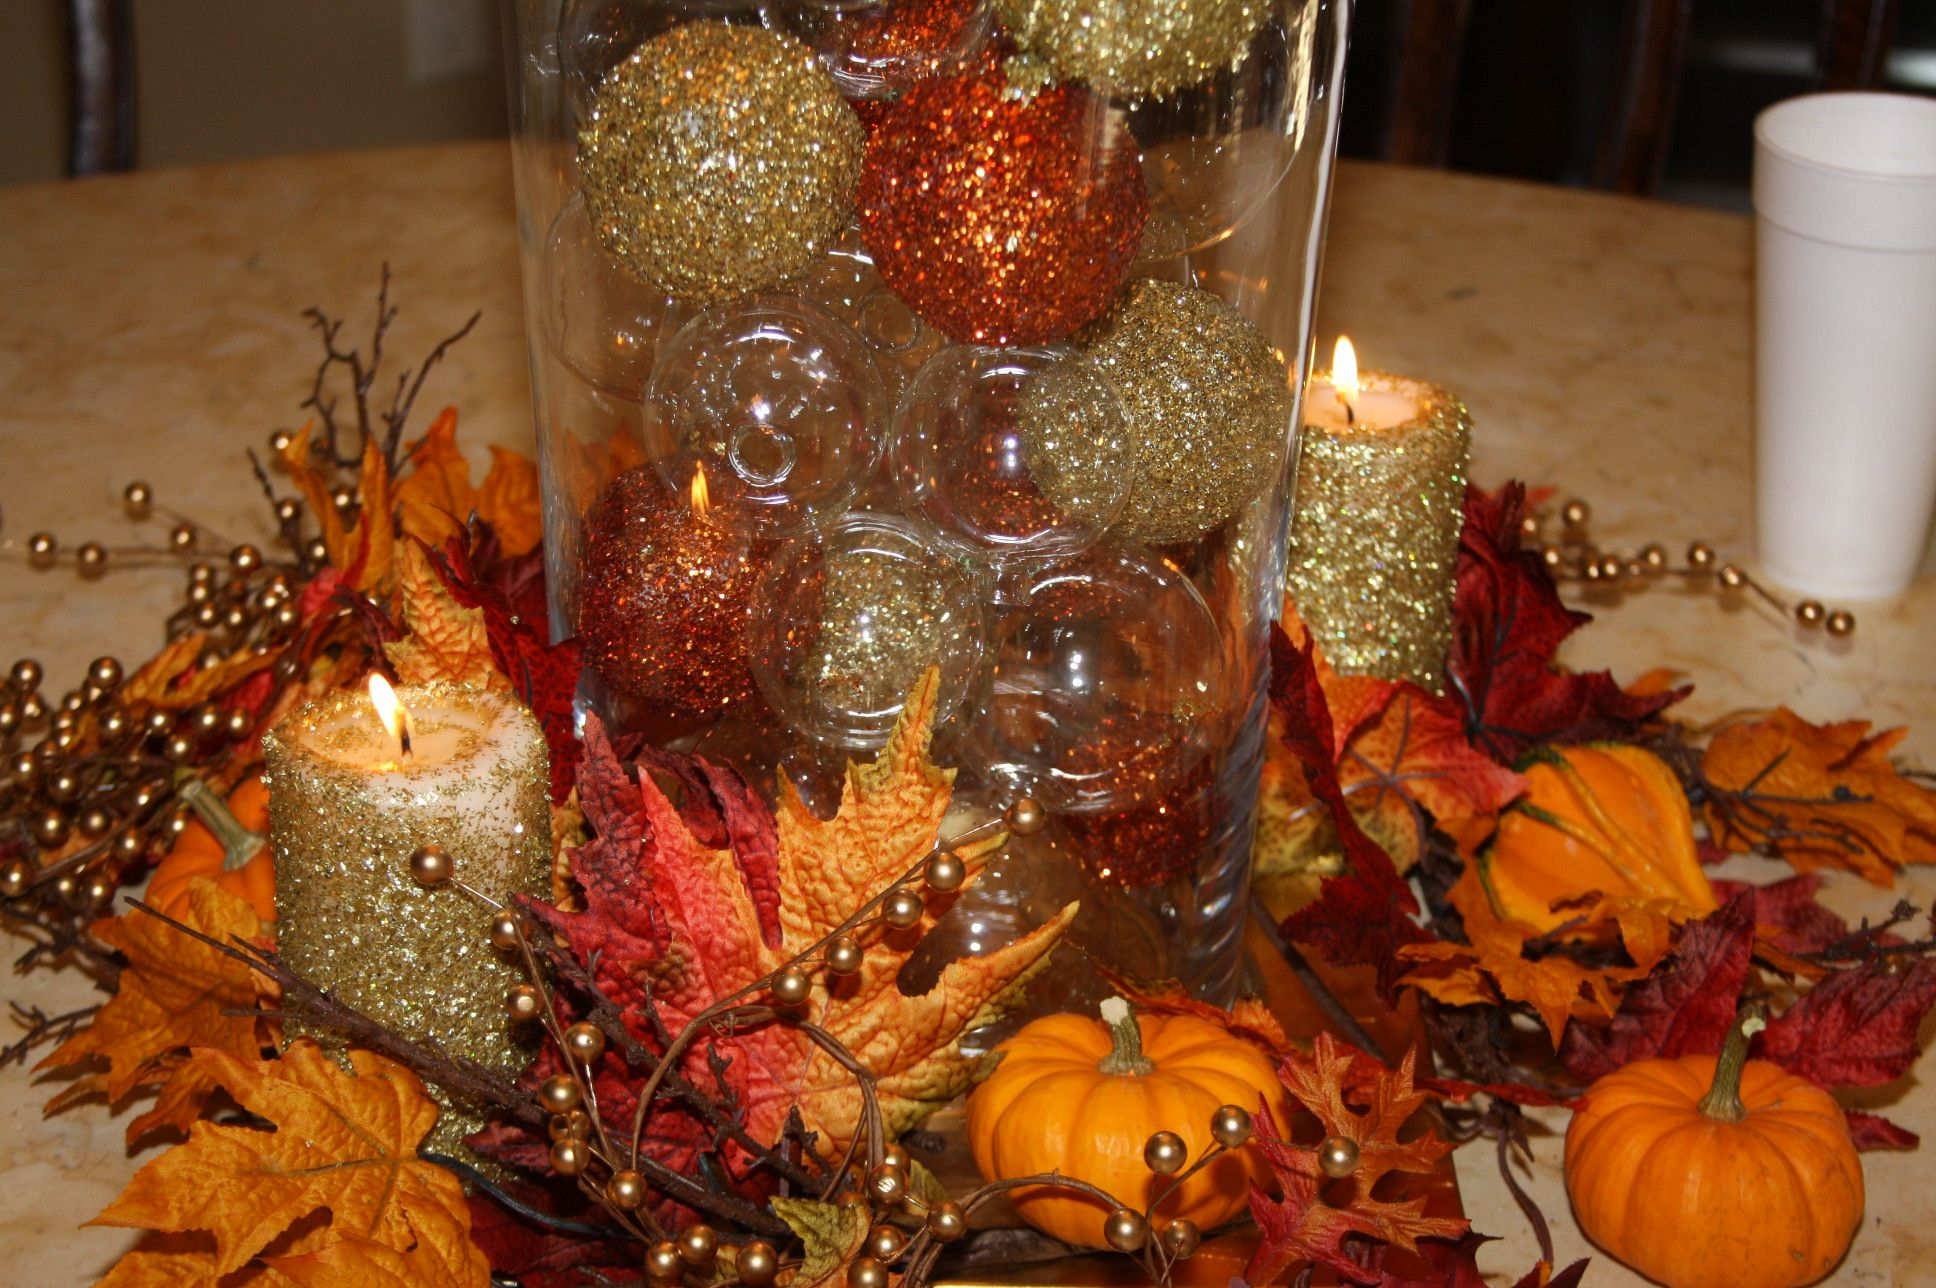 Thanksgiving Centerpieces made with clear cylinders filled with styrofoam balls we glittered ourselves and mixed in clear glass balls. Inexpensive candles sprayed with adhesive then rolled in same glitter we used on the balls!